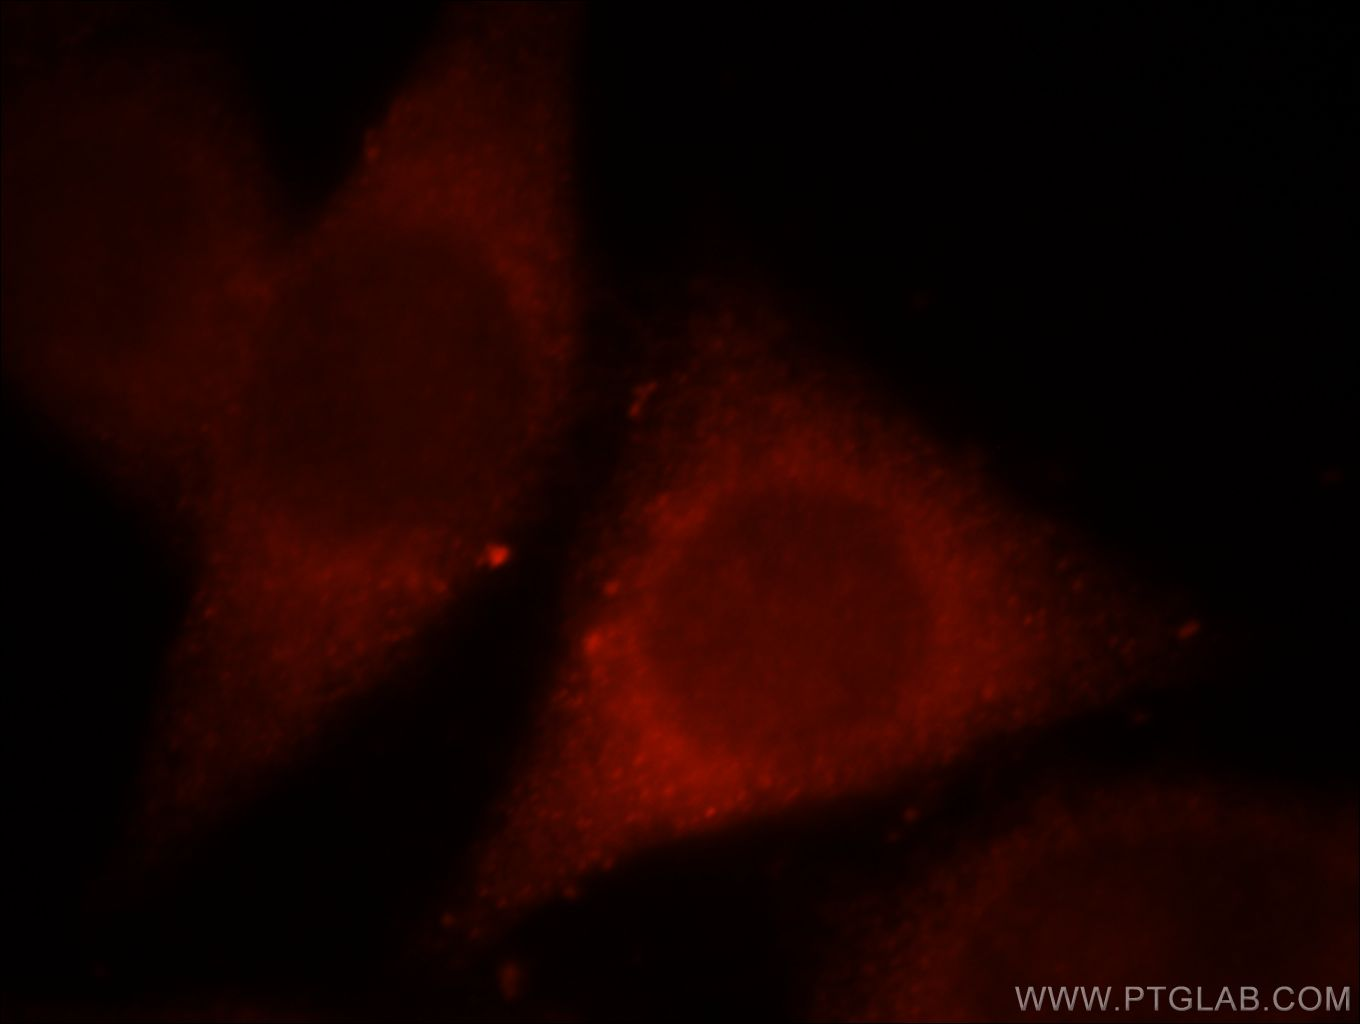 MPPED1 Immunofluorescence IF 13677-1-AP MPPED1 Antibody 239AB; C22orf1; FAM1A; FLJ50009; FLJ54633; FLJ59965; FLJ78907; MGC88045